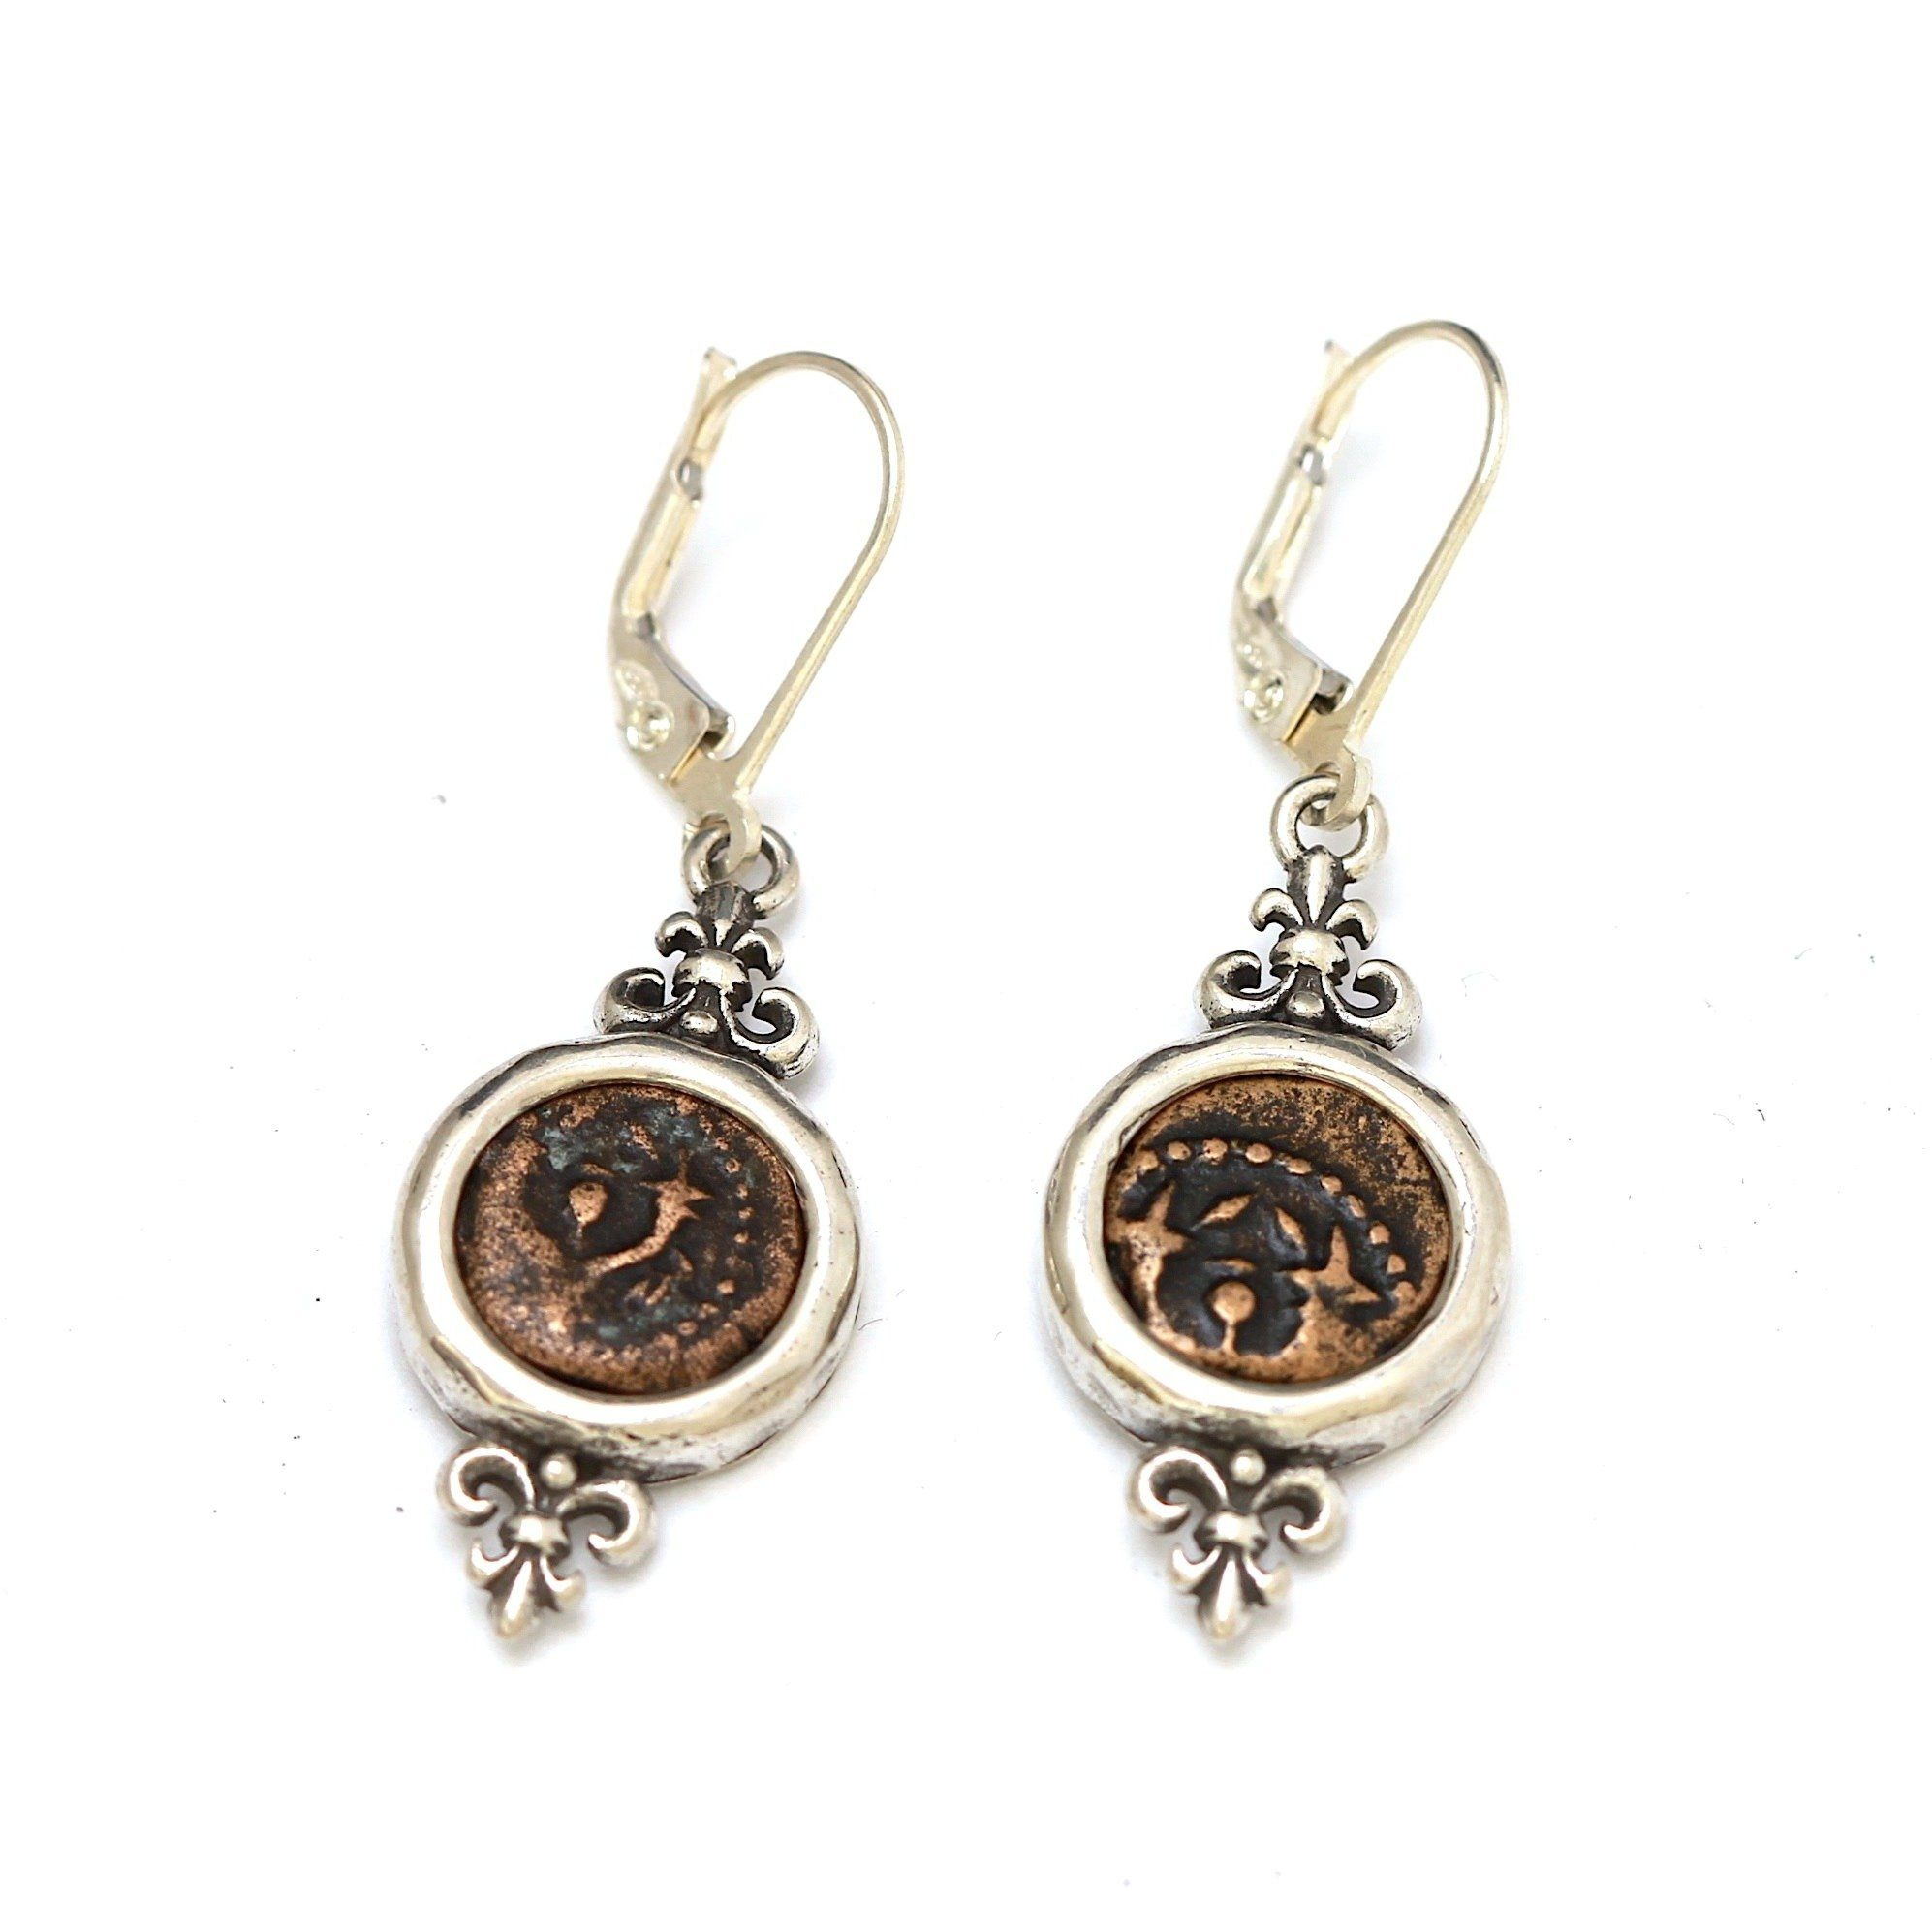 Ancient Judaea Coins, Sterling Silver Earrings, Genuine Ancient Coins, with Certificate 6490 - Erez Ancient Coin Jewelry, ancient coin jewelry, men jewelry, genuine ancient coins, made in the US